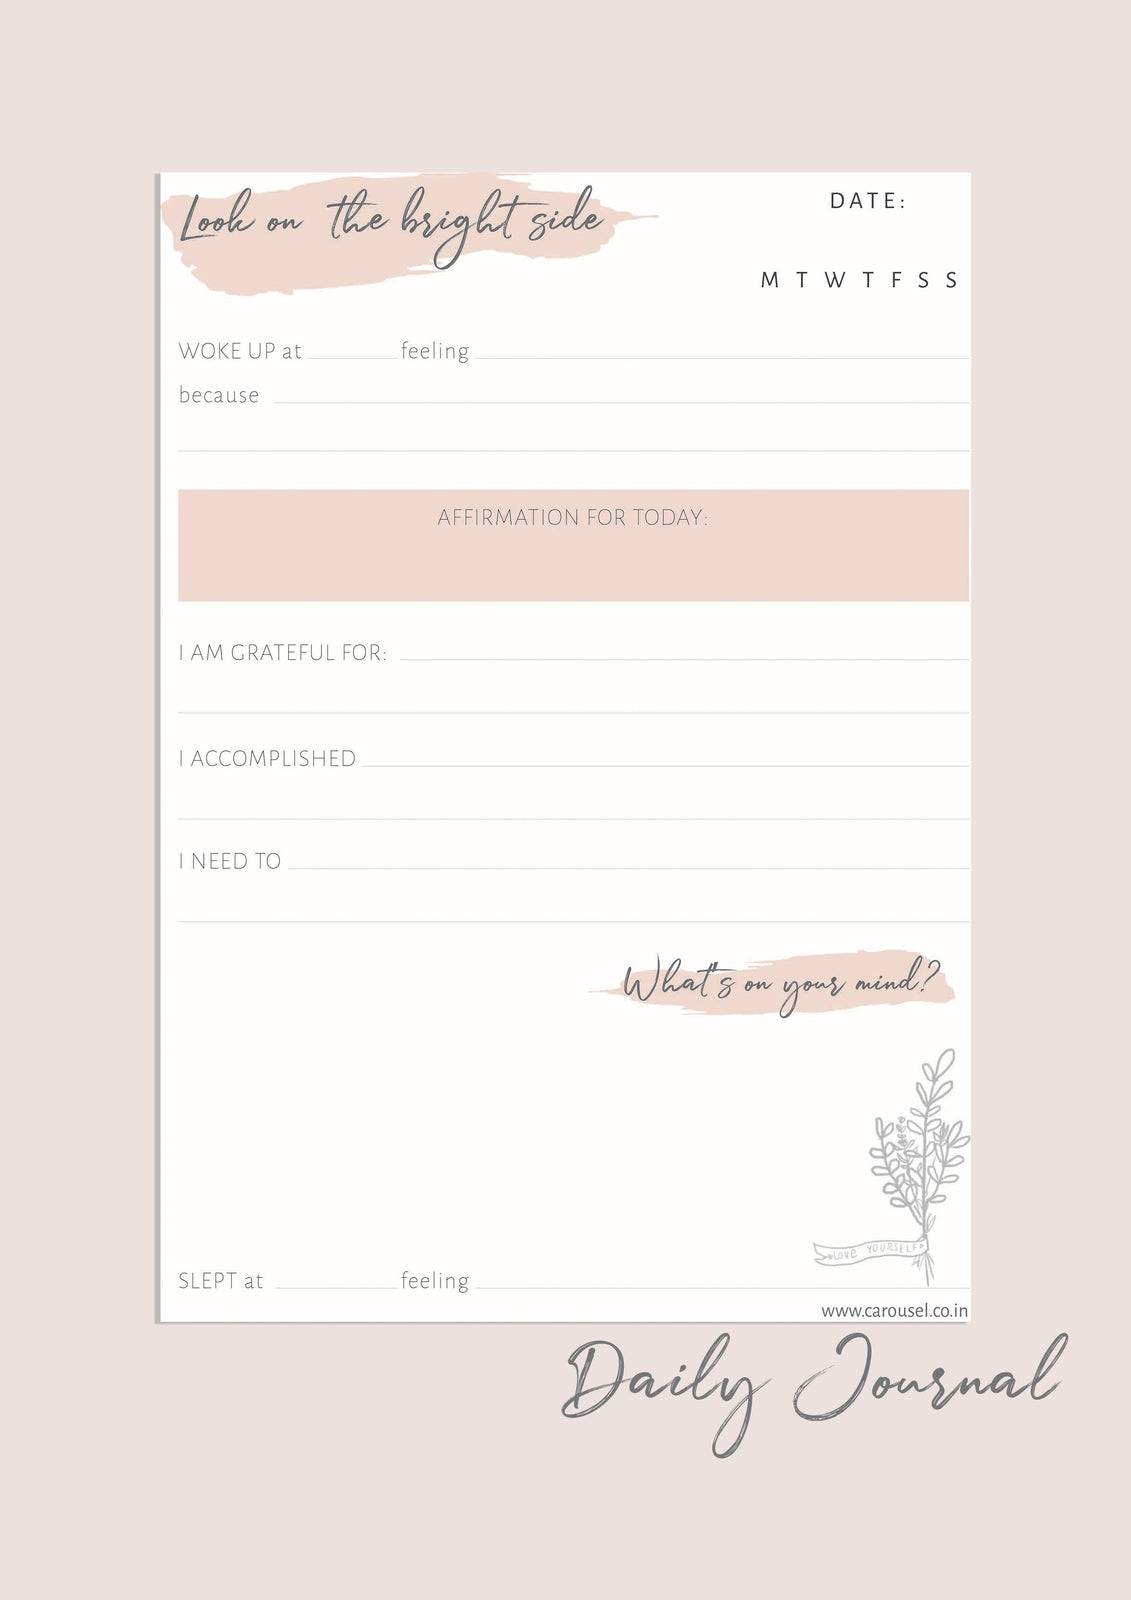 Printable Journal - Daily Journal